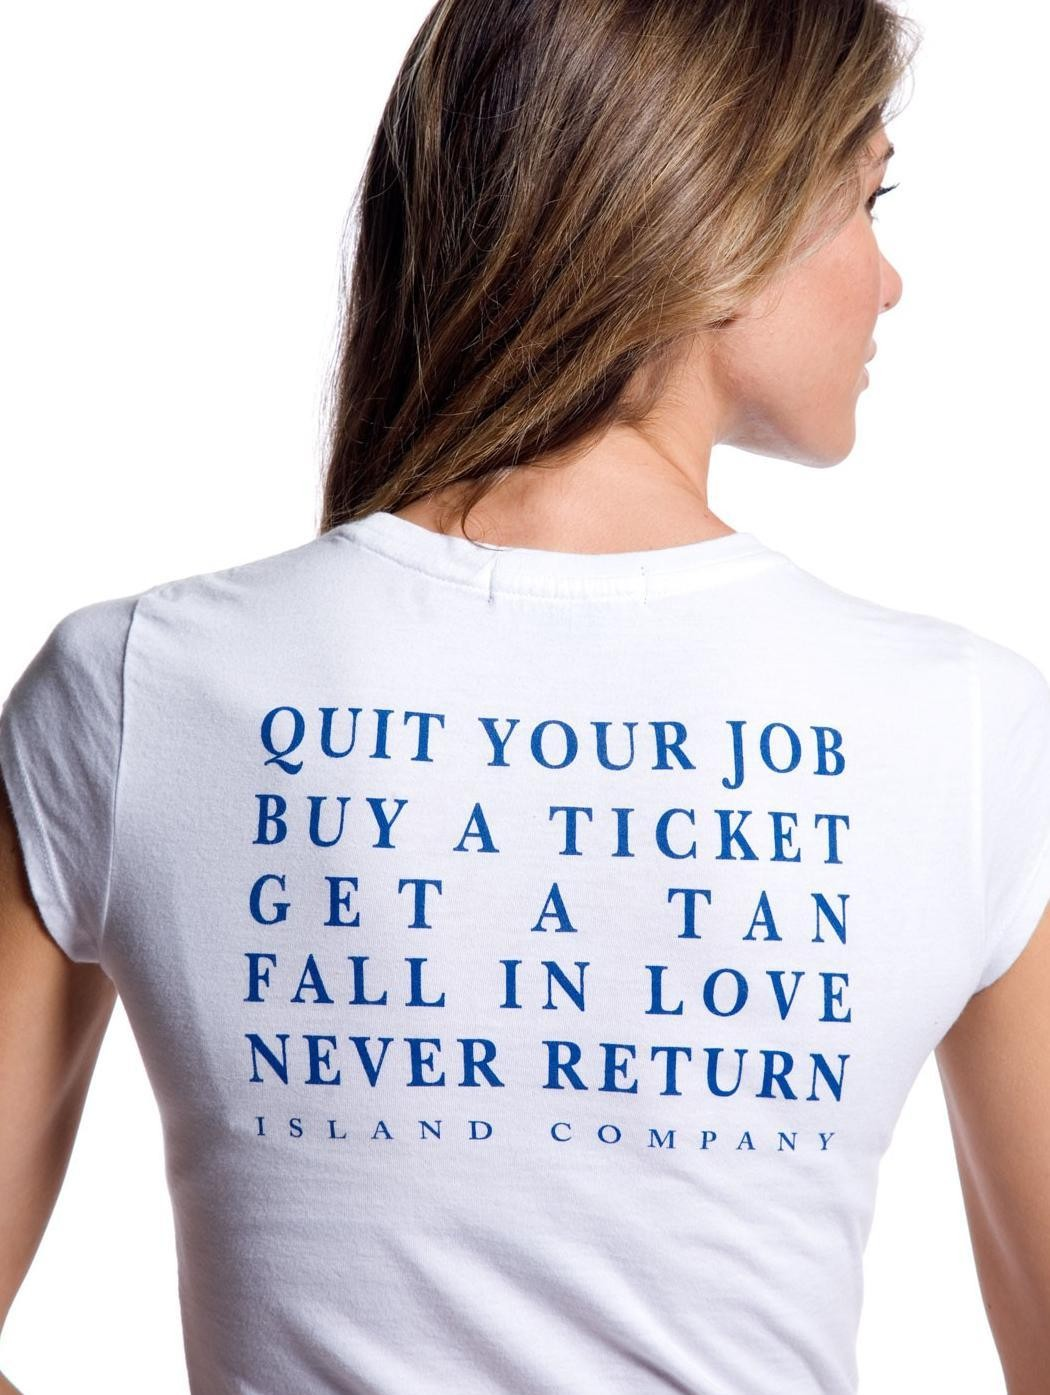 Women's White Quit Your Job, Buy a Ticket Tee Shirt | Island Company